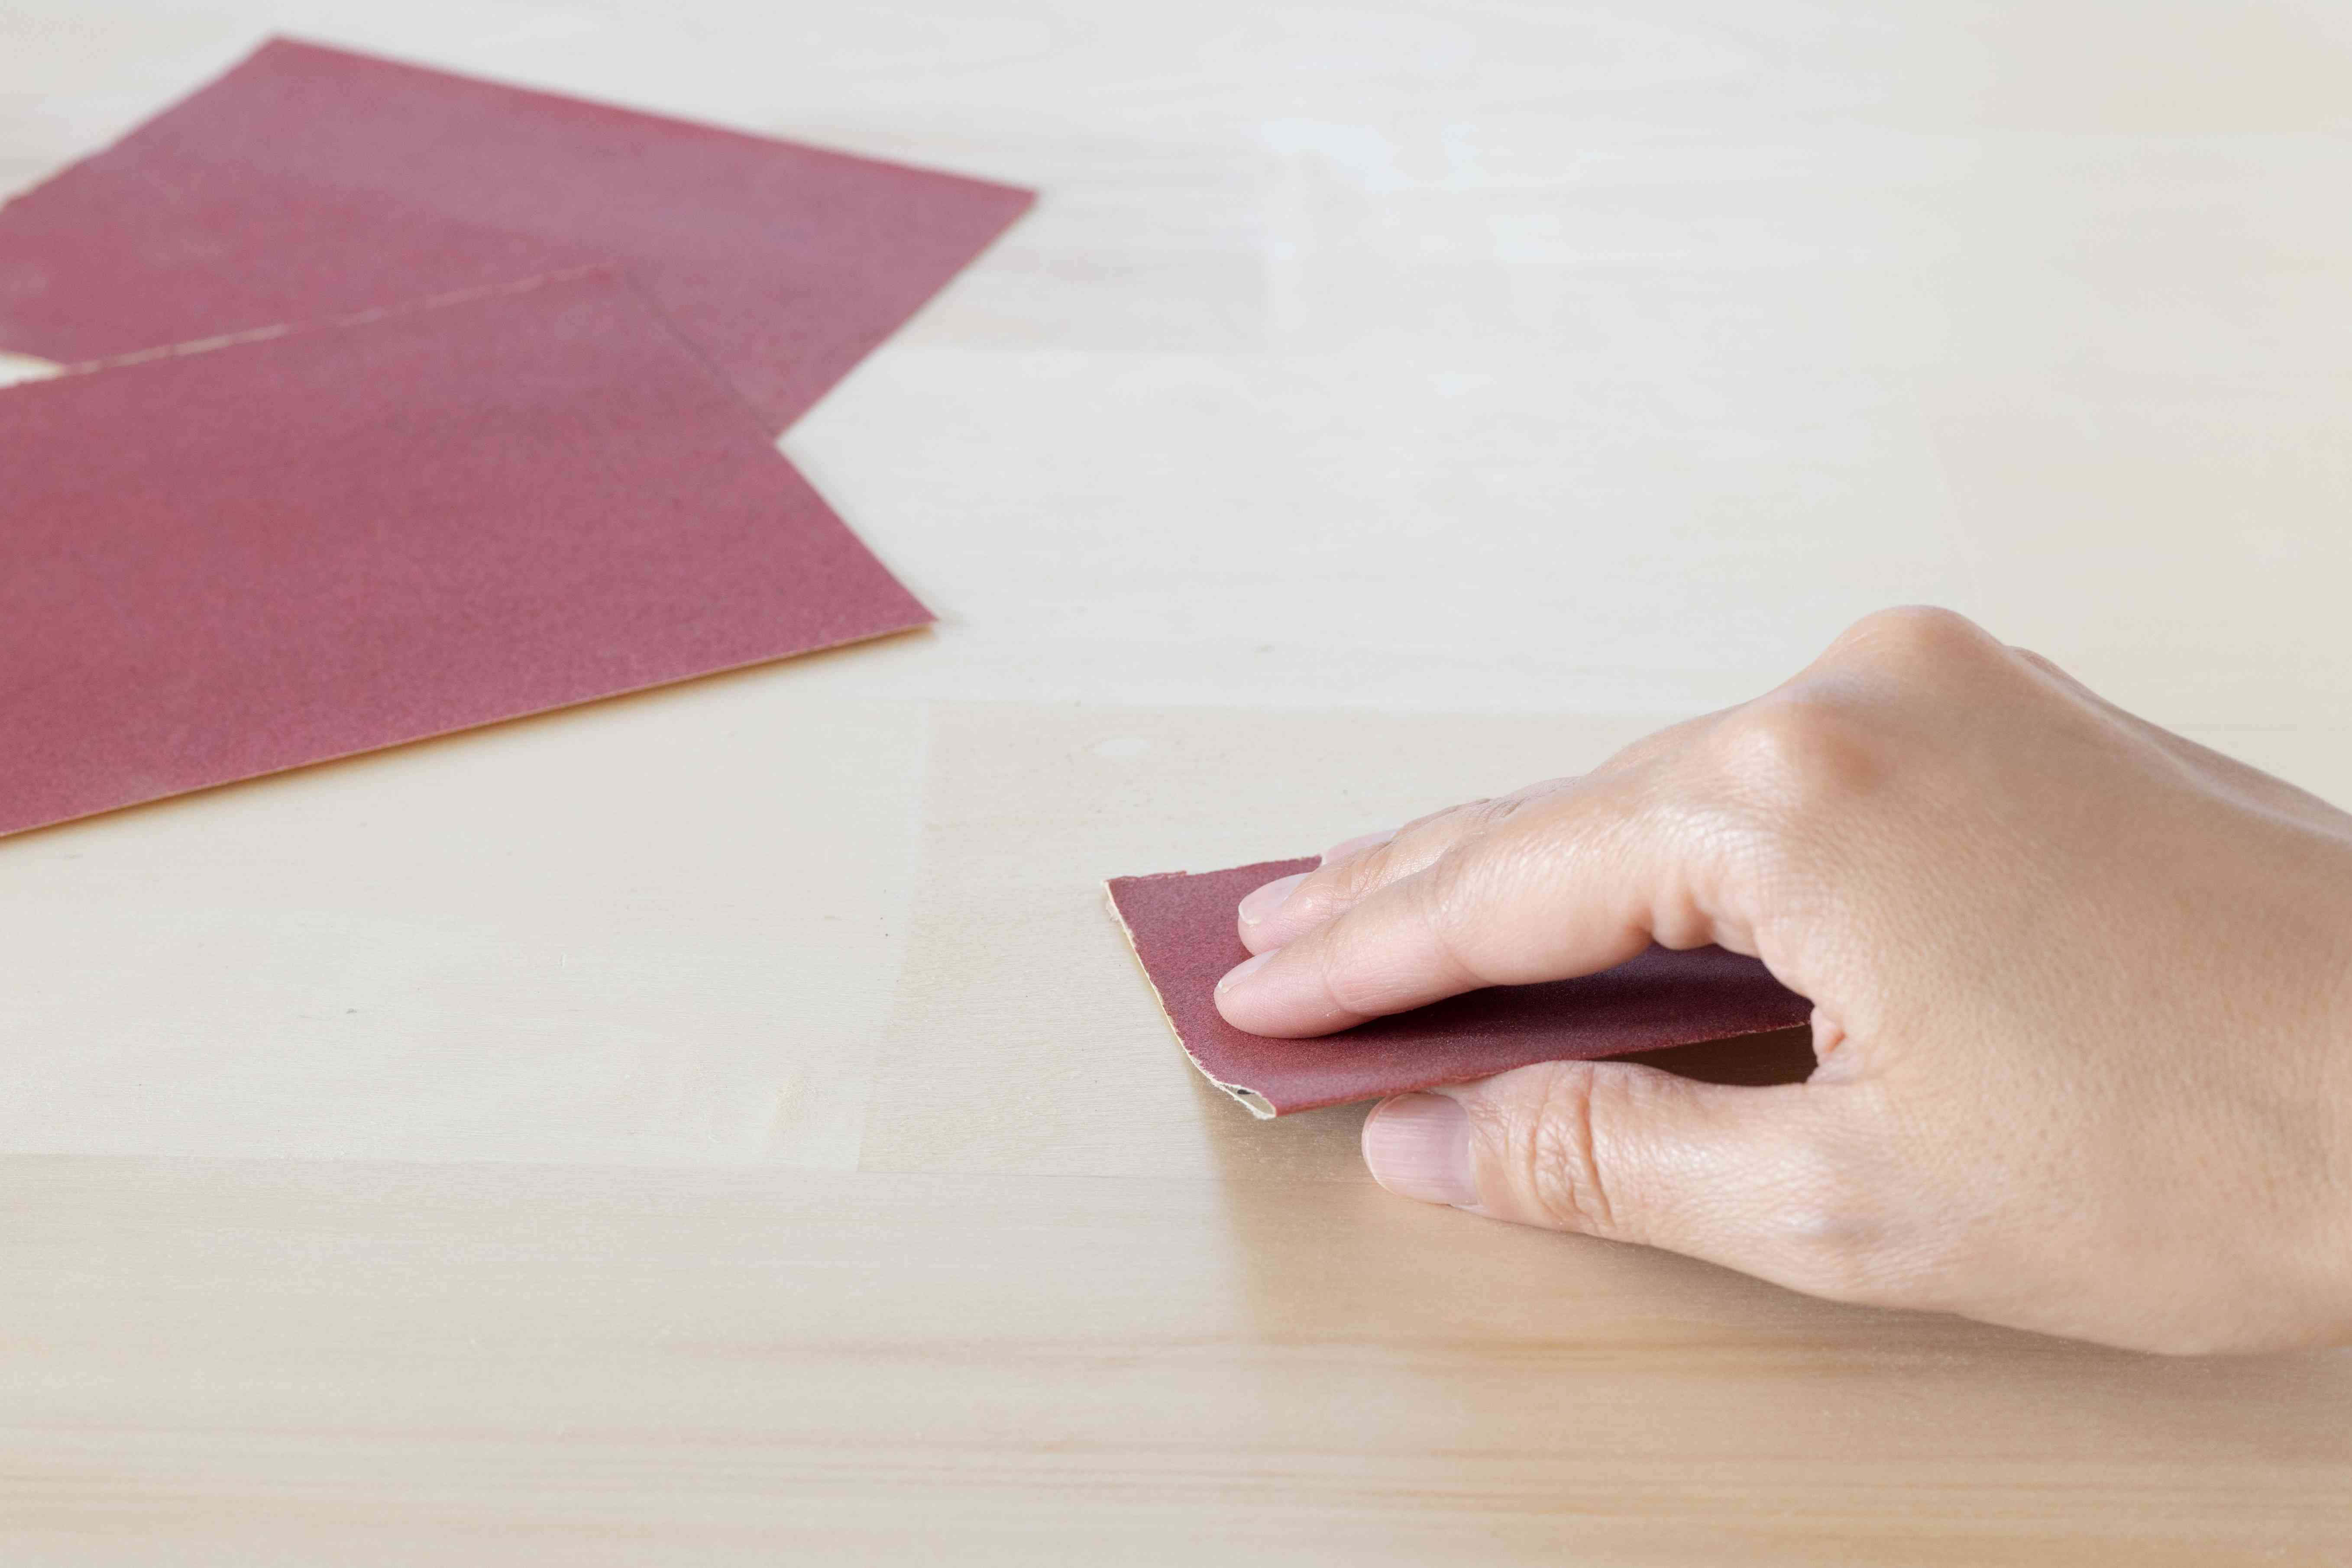 Red sandpaper rubbing wooden surface with super glue by hand